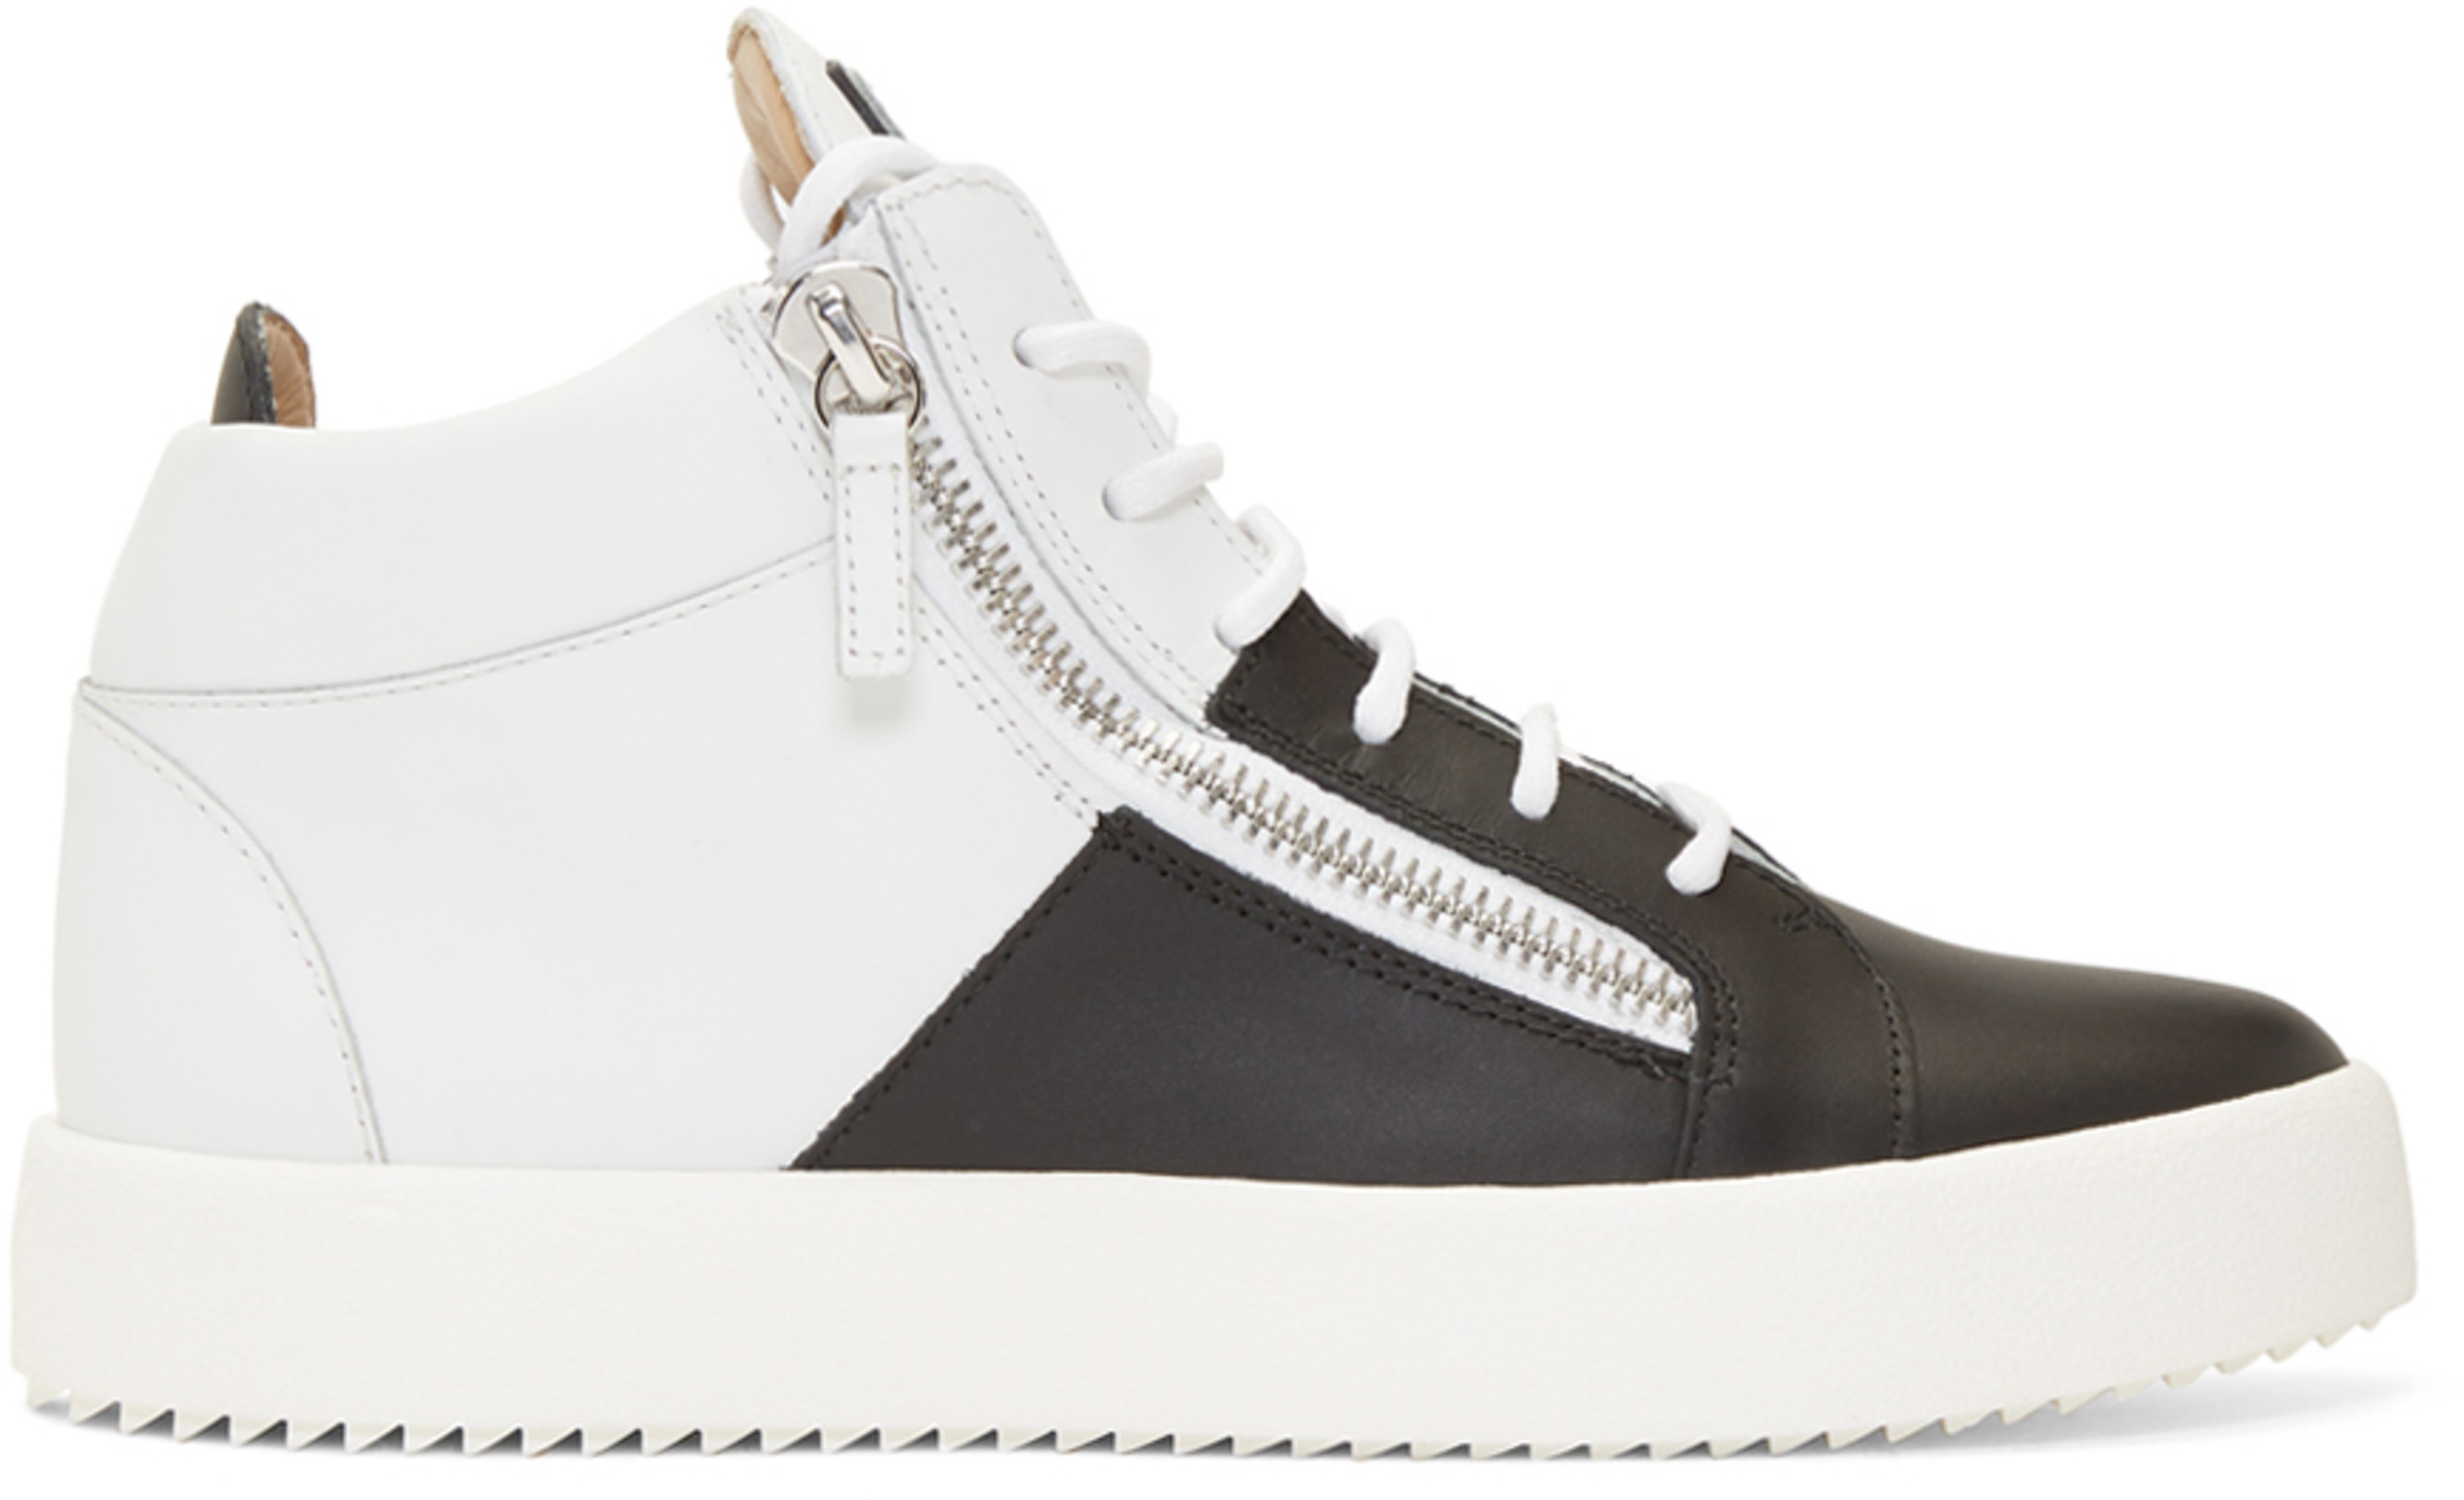 83c033b17ec272 Giuseppe Zanotti for Men SS19 Collection